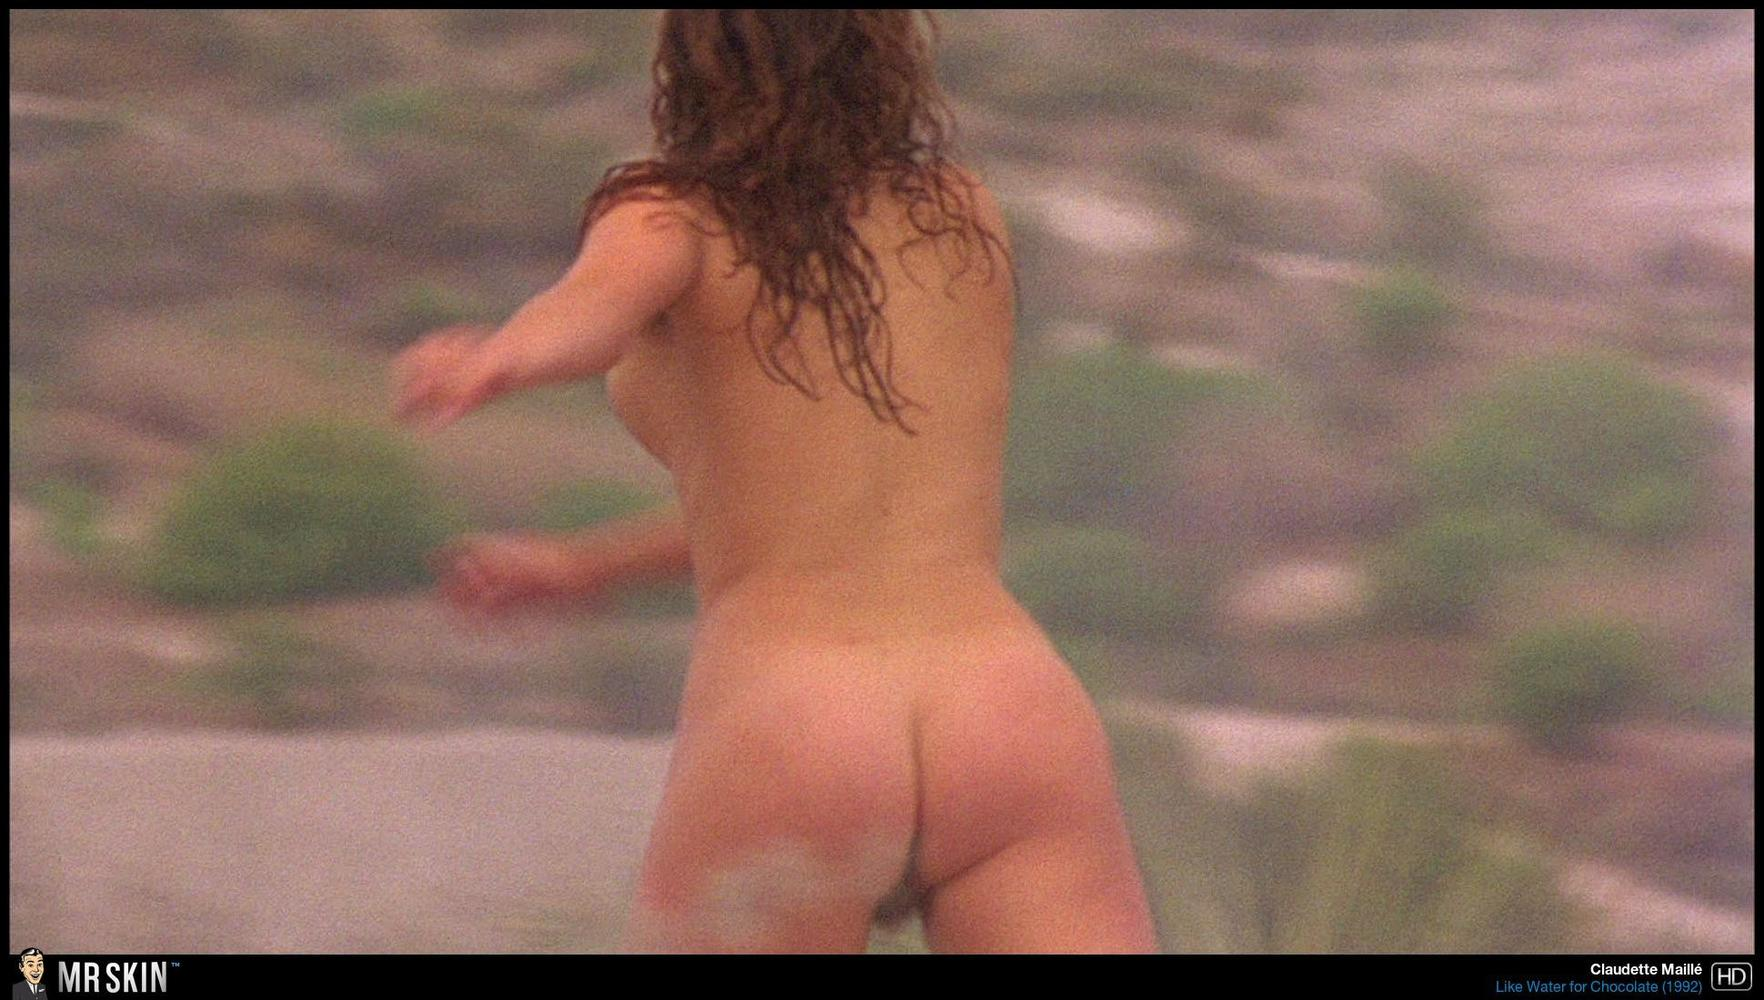 The Godfather Nude Video